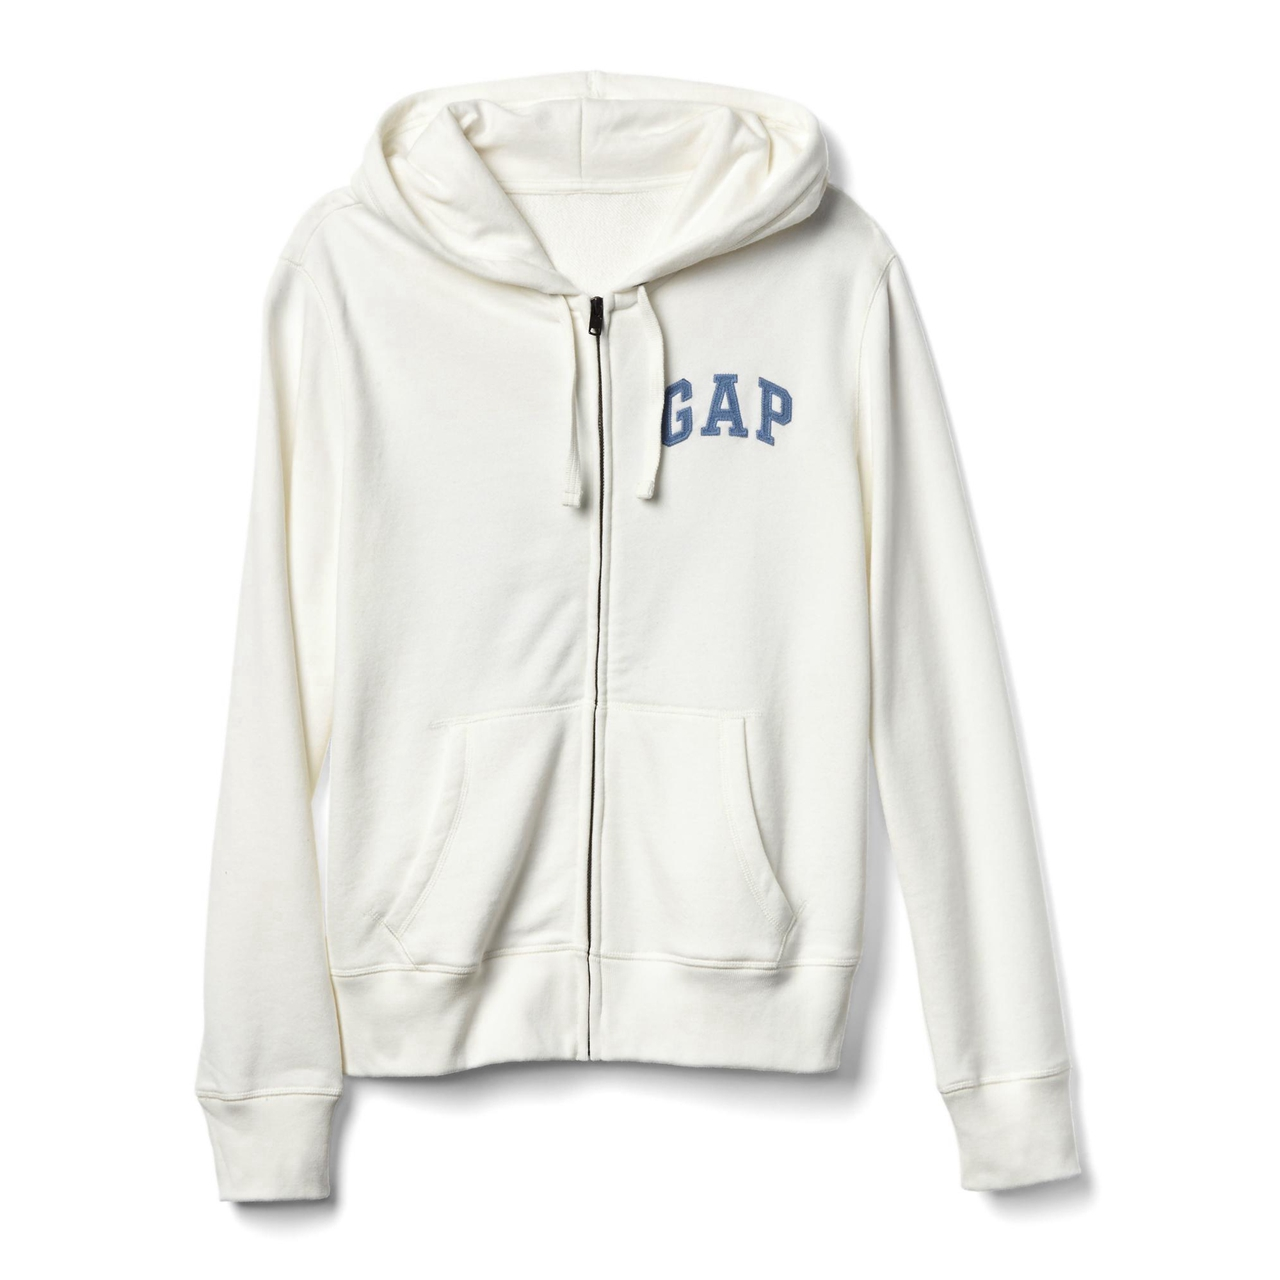 USD 96.10] Gap Mens logo patch Zip Hooded cardigan sweater ...